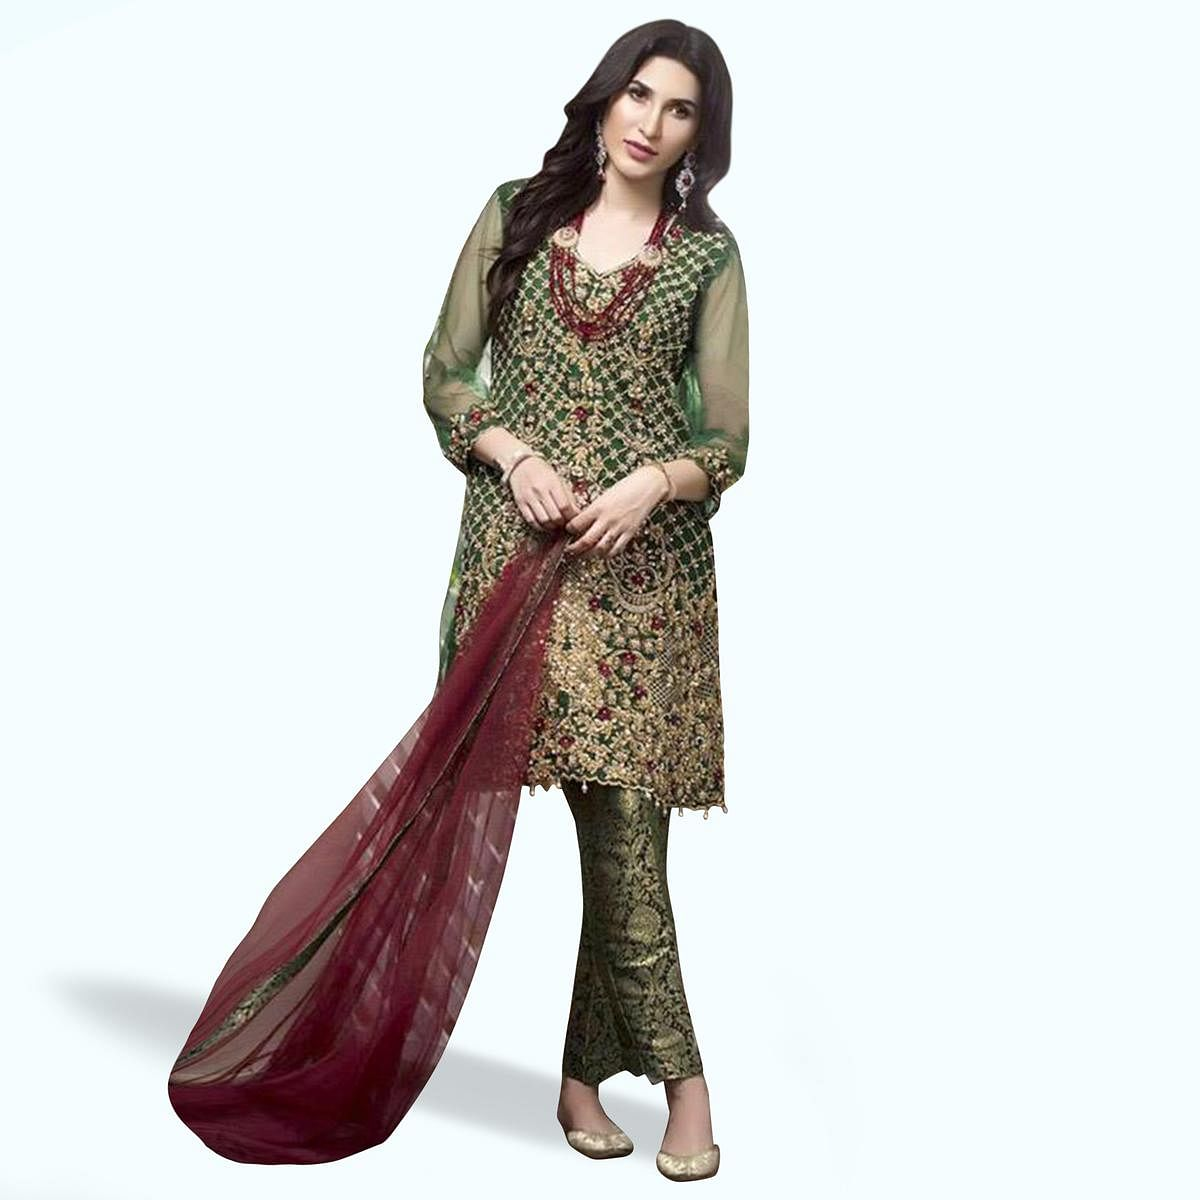 Marvellous Green Colored Partywear Embroidered Netted Pant Style Suit